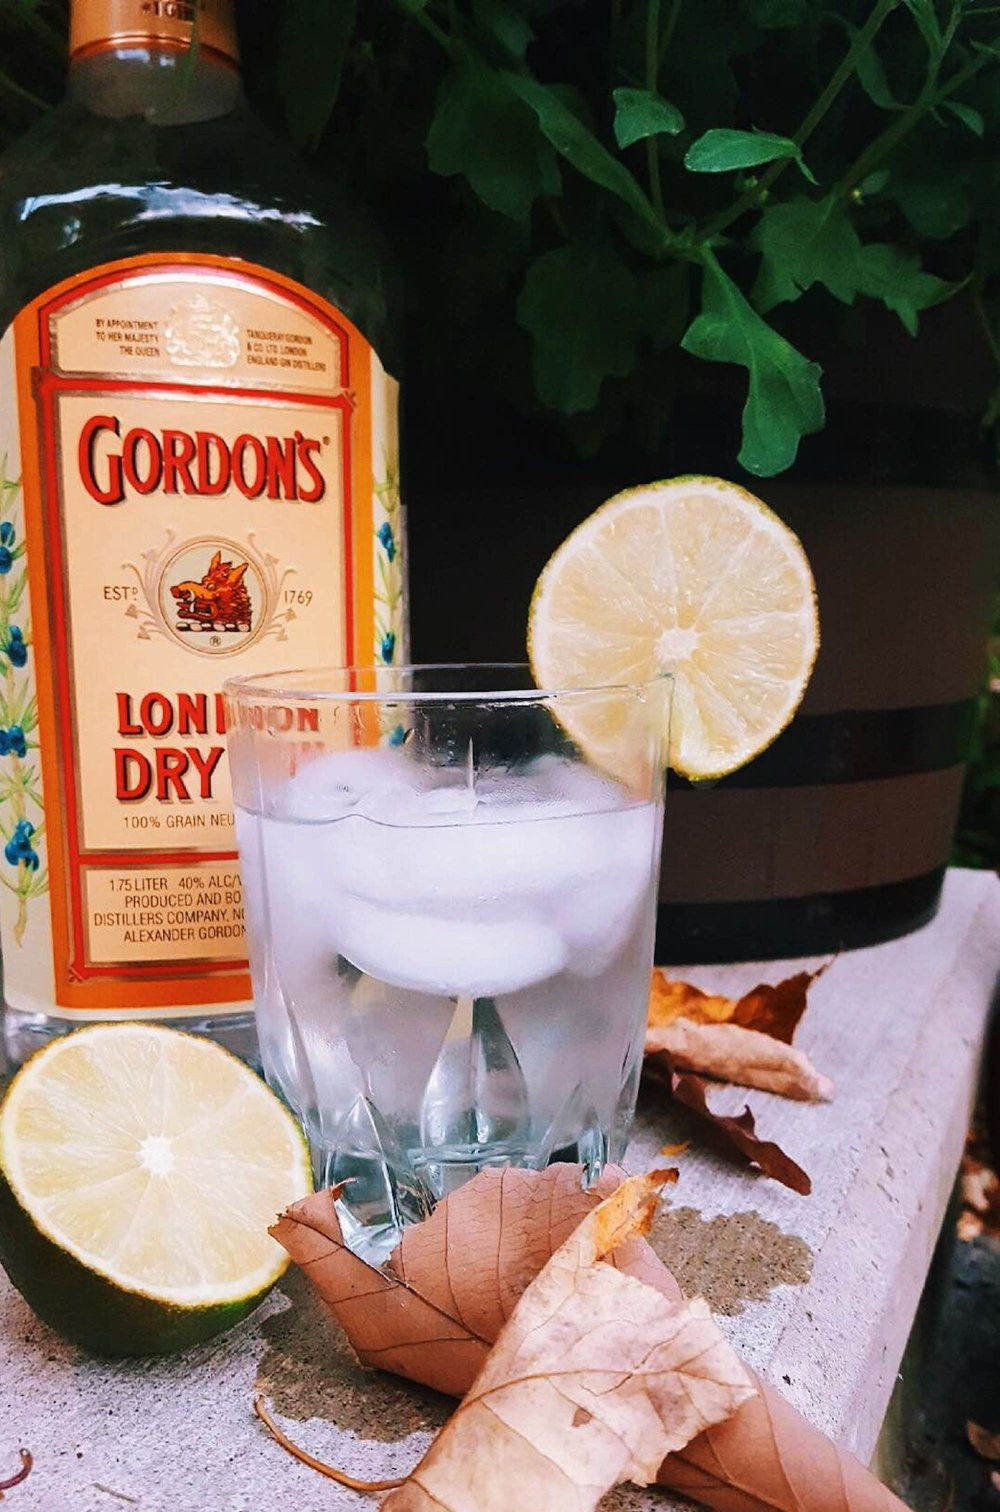 This week's drink of the week features a gin and tonic, in honor of the national gin and tonic day on Oct. 19. (Megan Krementowski/The Daily Campus)